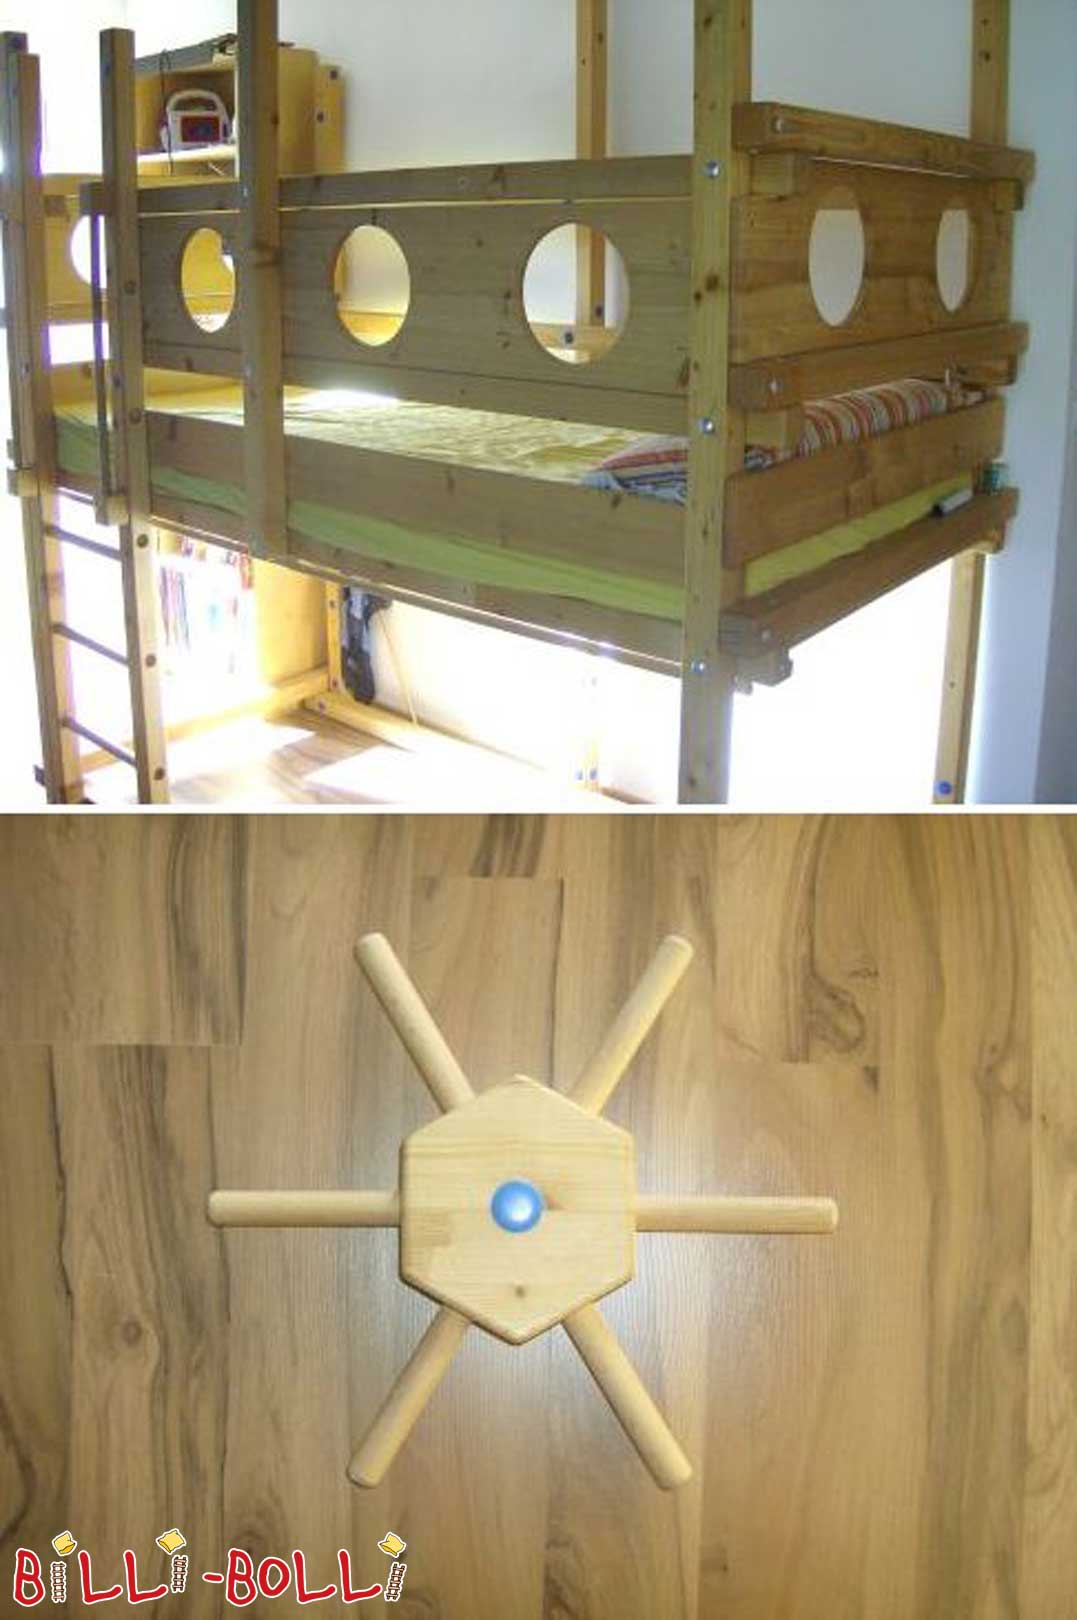 Growing bunk bed for sale (second hand loft bed)